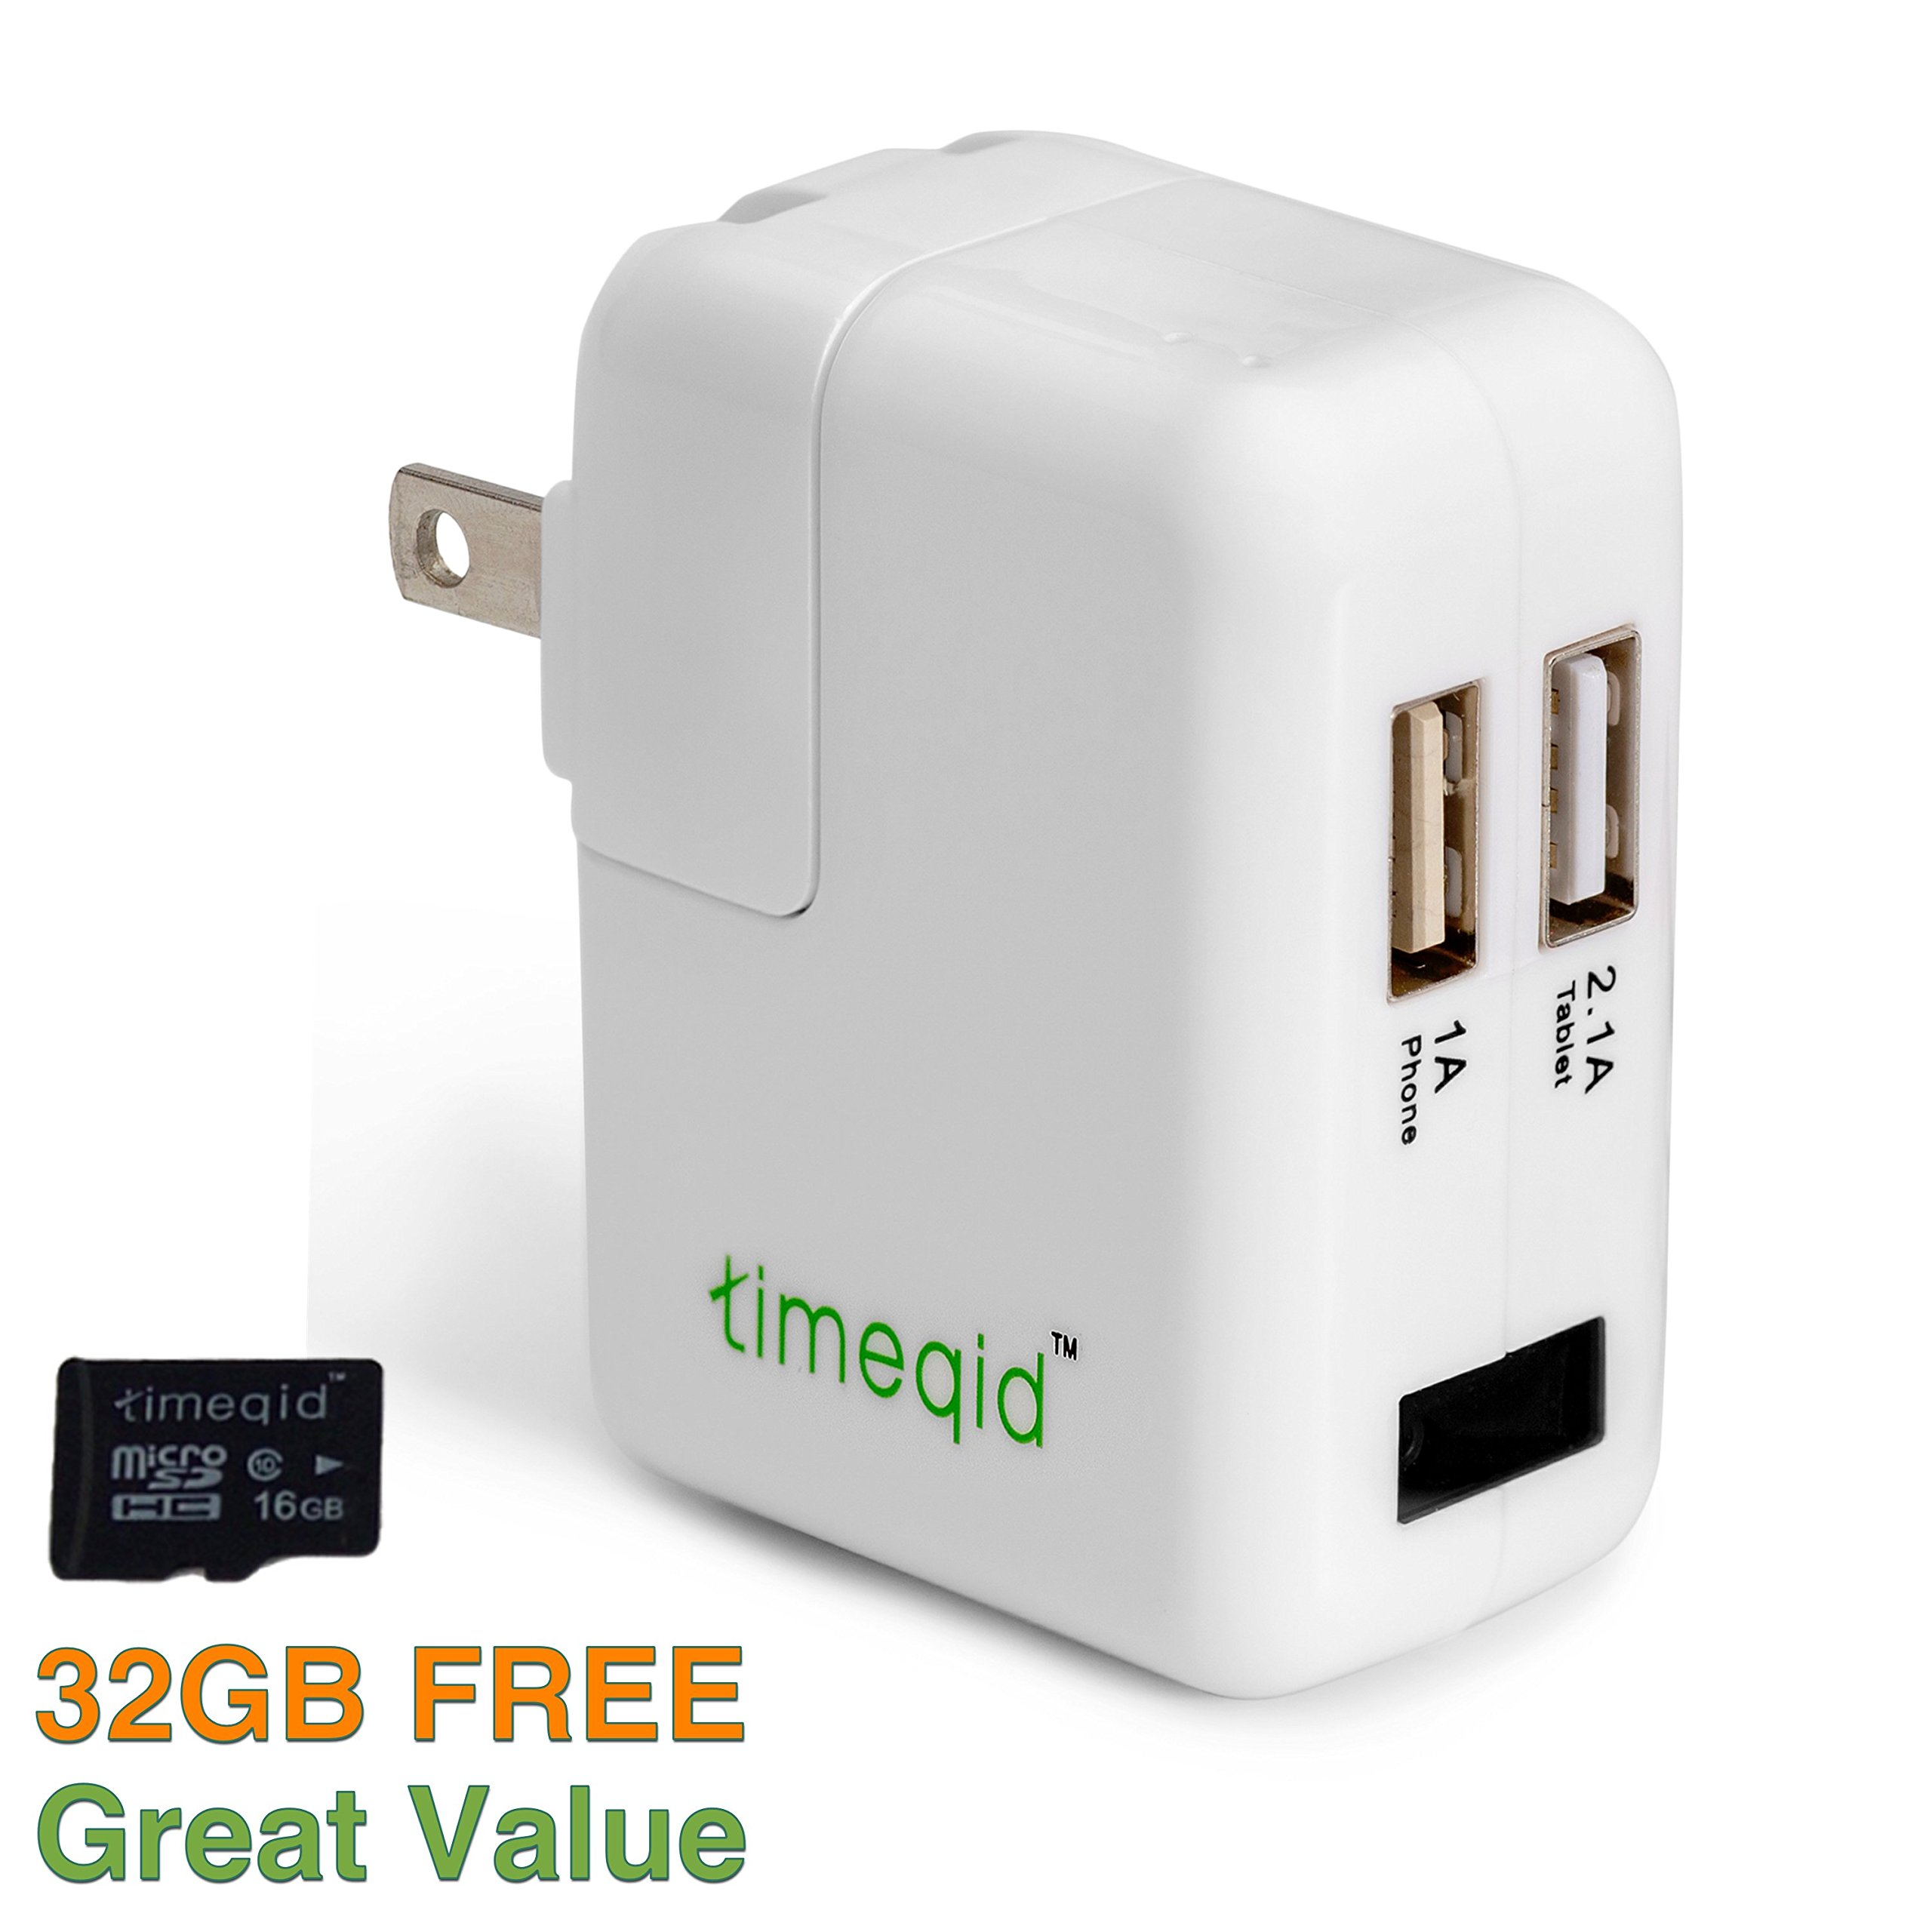 Hidden Camera Charger by Timeqid | Free Memory Card Included - With/Without WiFi - Double Charging Ports - Full HD 1080p - Nanny Camera - White